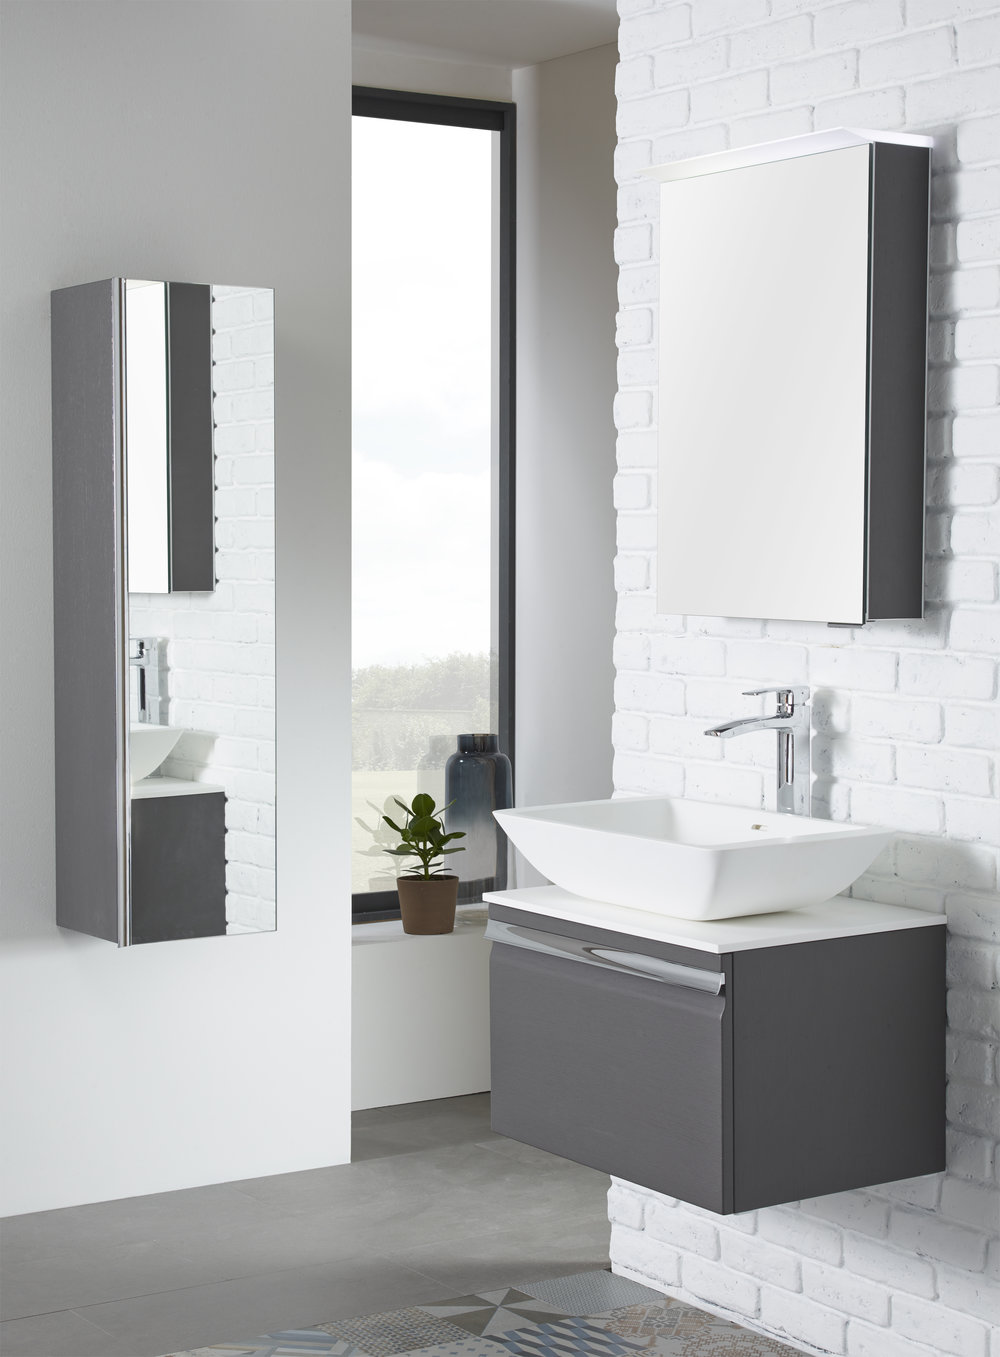 Mirror mirror - Mirrored surfaces are not only practical, but capture & project light into darker corners to open up your bathroom space.